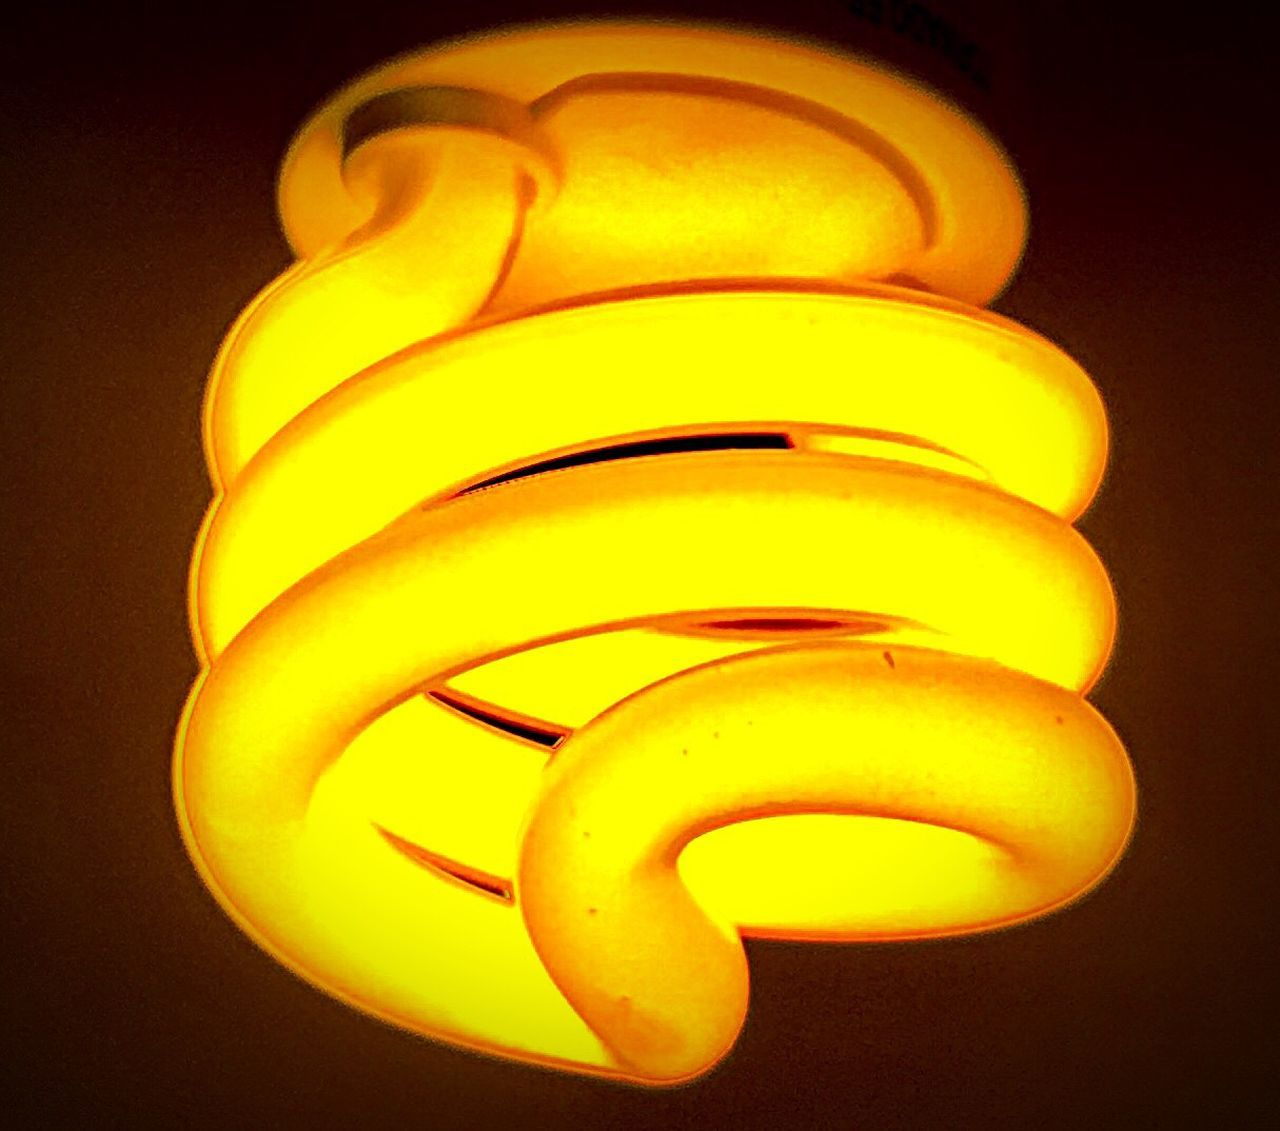 Energy Efficient Lightbulb Energy Efficient Spiral Lighting Equipment Light Bulb Yellow Illuminated Electricity  No People Close-up Low Angle View Indoors  Resist EyeEm Diversity The Secret Spaces Long Goodbye TCPM EyeEmNewHere